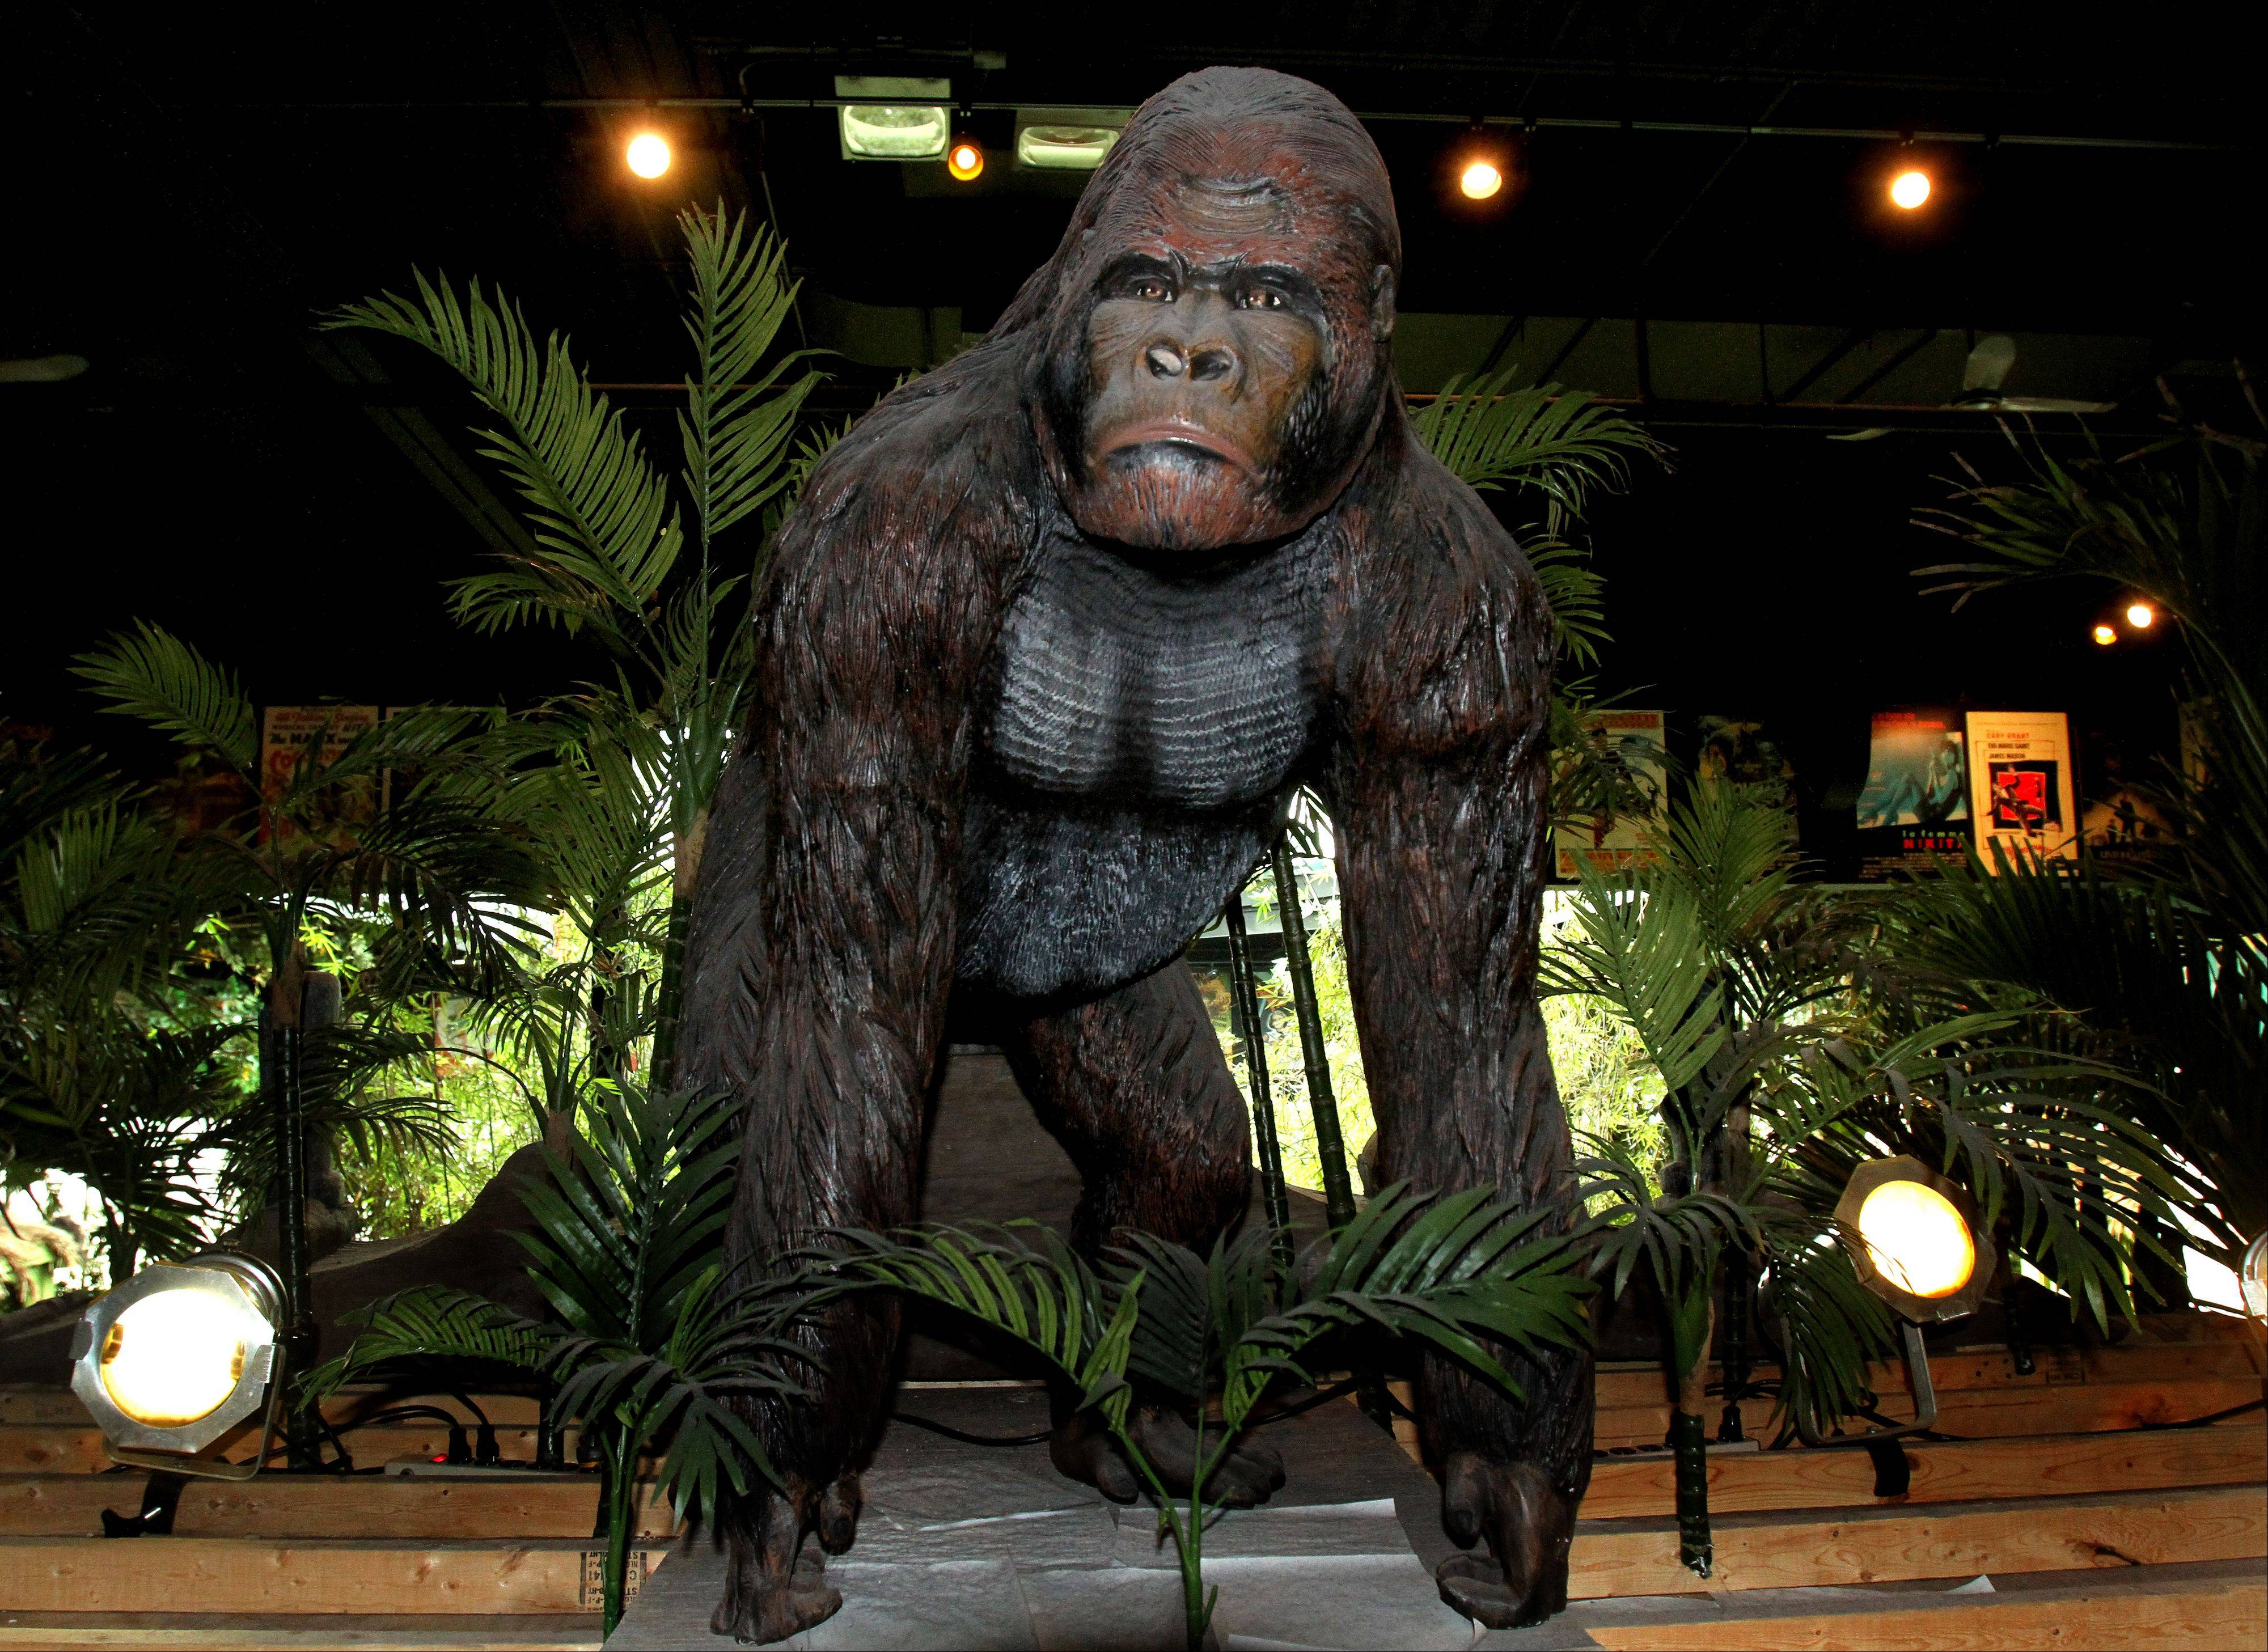 Many people probably do not even see the giant gorilla overlooking the entrance into the theaters at the Hollywood Palms Cinema in Naperville.